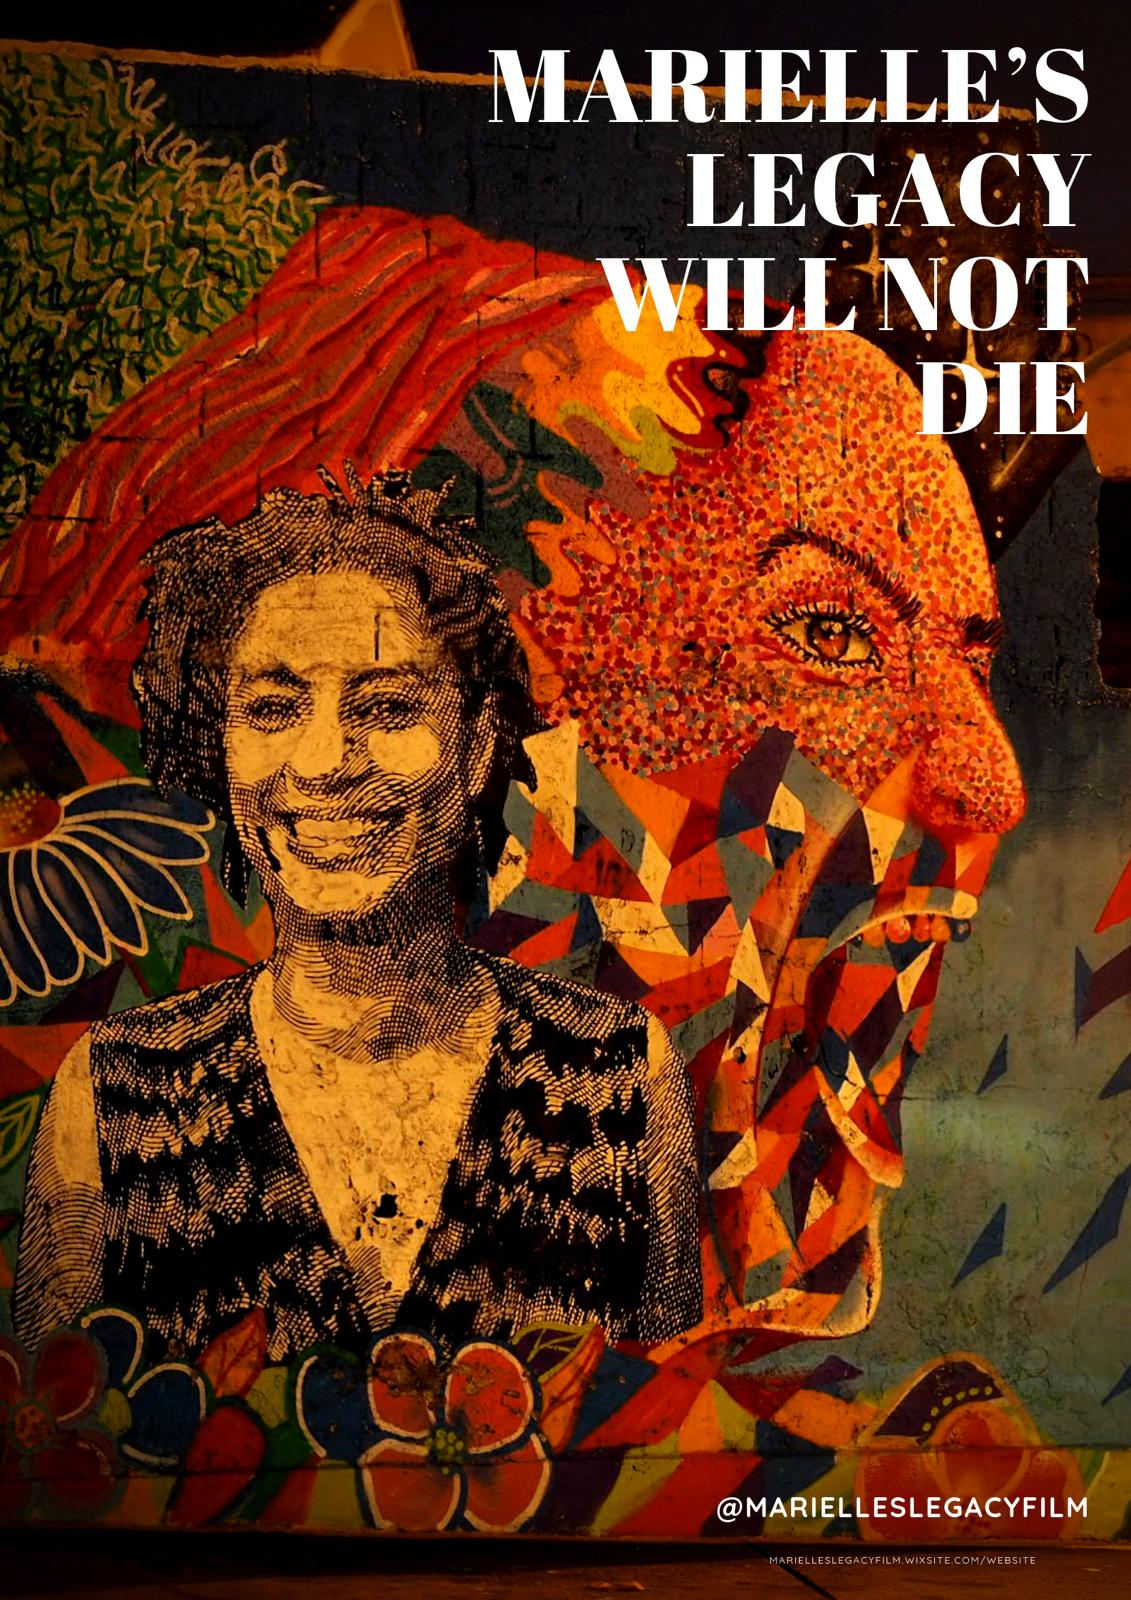 This illustration shows a colourful poster of Leonard Cortana's documentary film 'Marielle's Legacy Will Not Die', which has been reviewed in the accompanying article. To the left-centre of the poster is a stylized, cheerful and smiling image of Marielle Franco, who was an upcoming and spirited Afro-Brazilian human rights activist. She was assassinated by her detractors in March 2018. Behind this image is another stylized and fierce side profile image of Marielle where she seems to be growling like a tiger or a lion. The second image forms a backdrop to the first. To the top right of the poster is the film's name printed in bold lettering; to the bottom right is the film's Twitter handle @Marielleslegacyfilm. Poster credit: Artist unknown